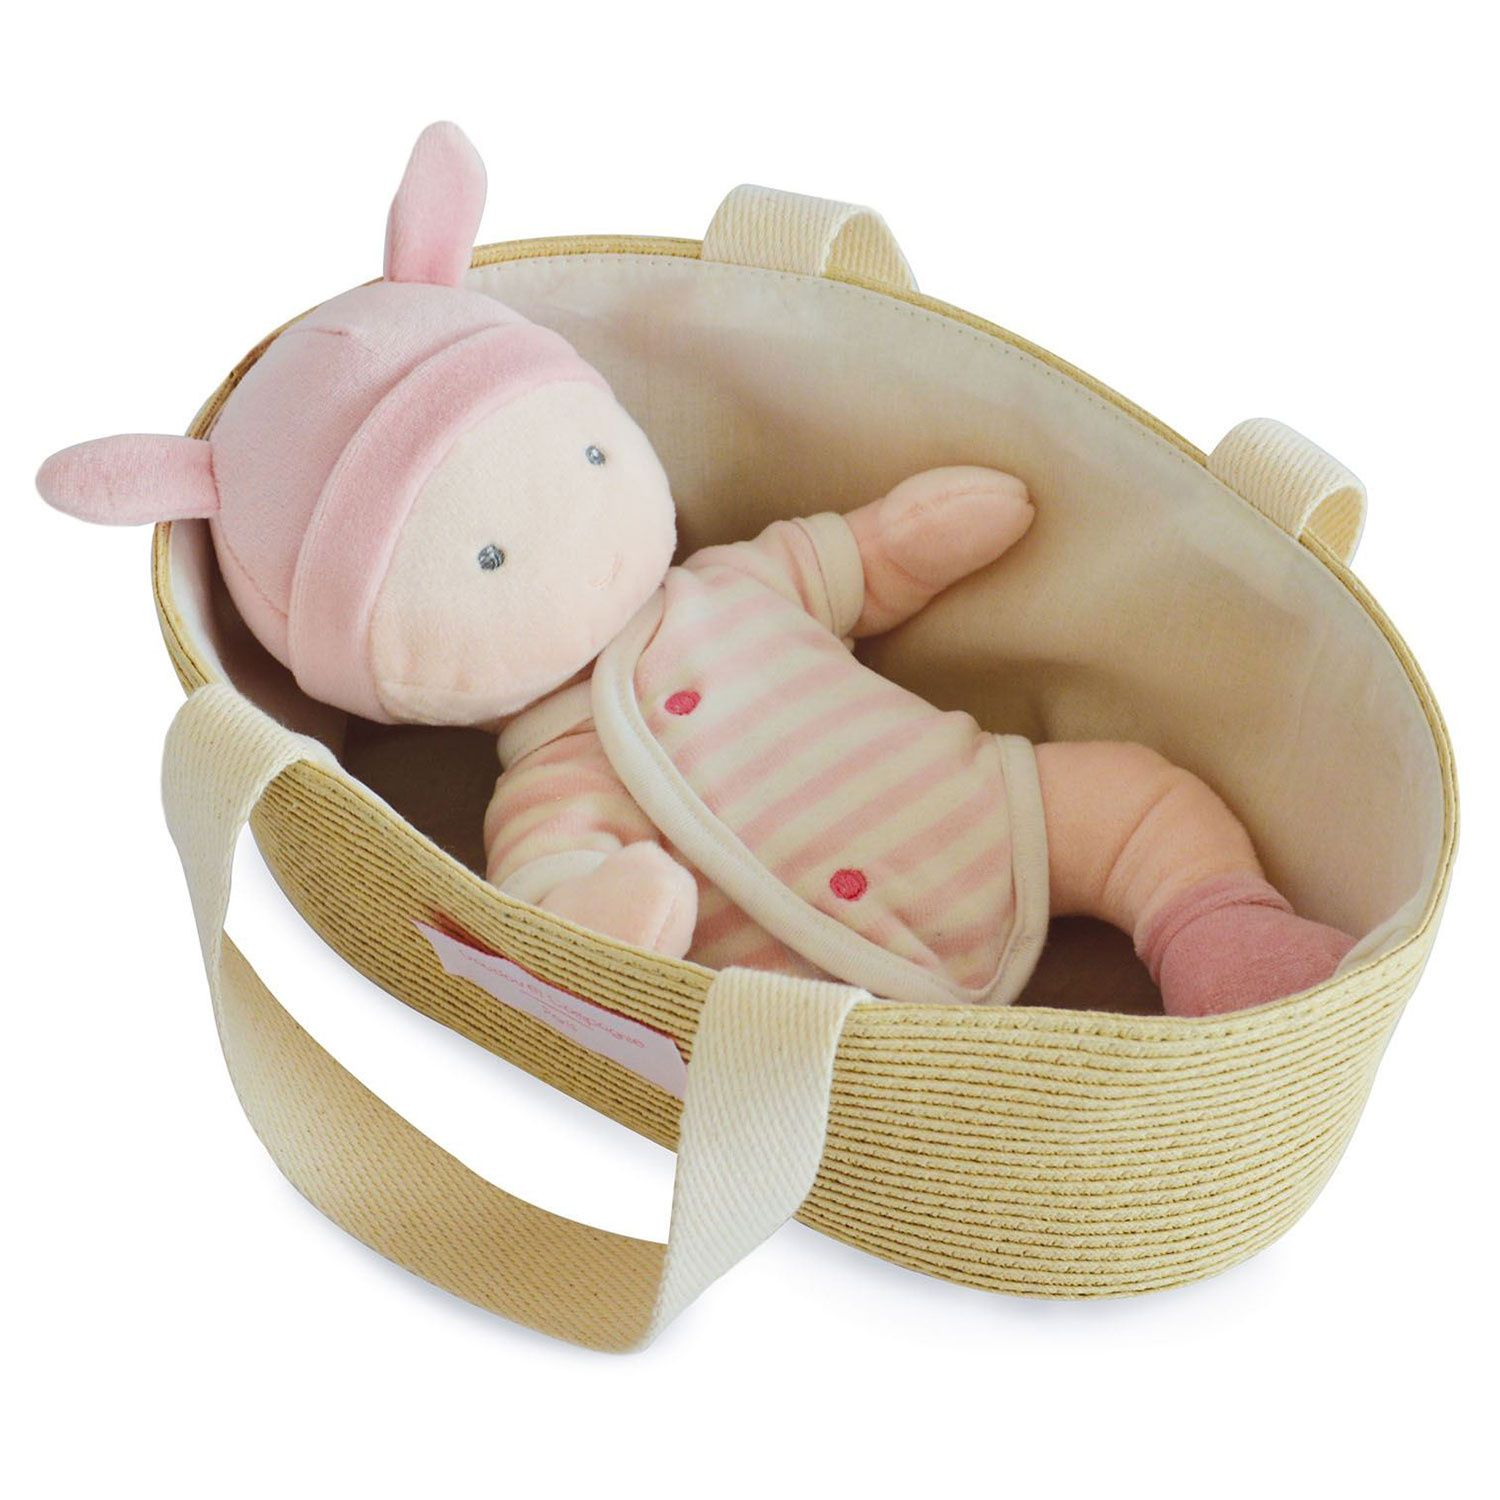 Picture of Doudou et Compagnie DC3624 baby accessory light pink